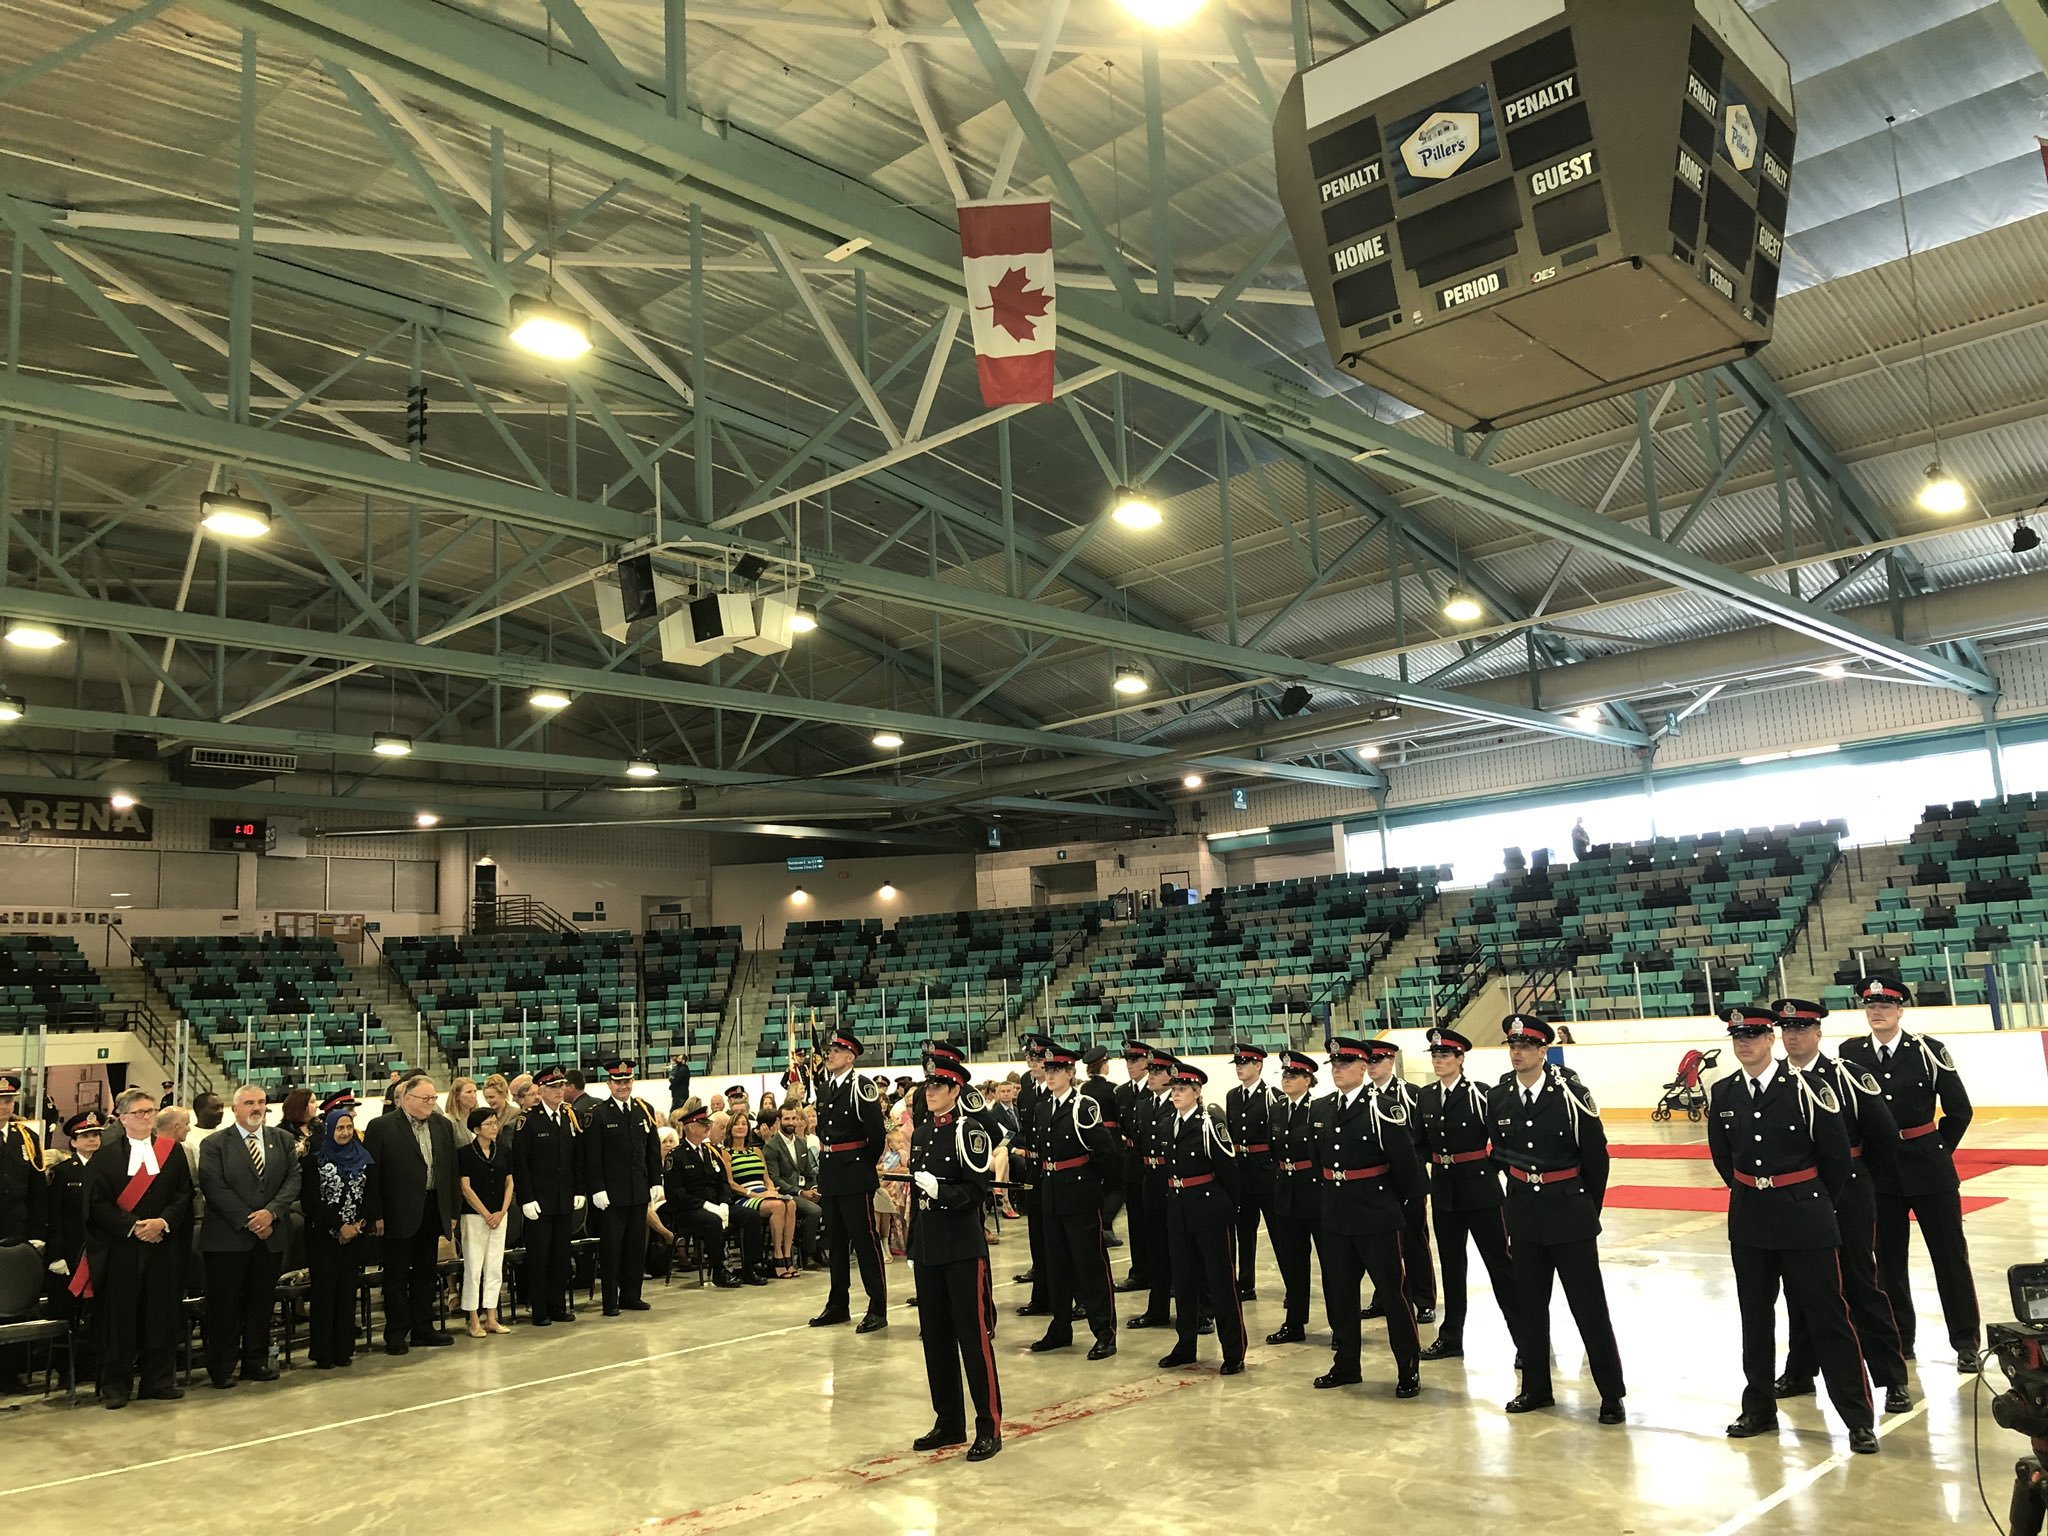 19 new WRPS' officers being sworn in (video)